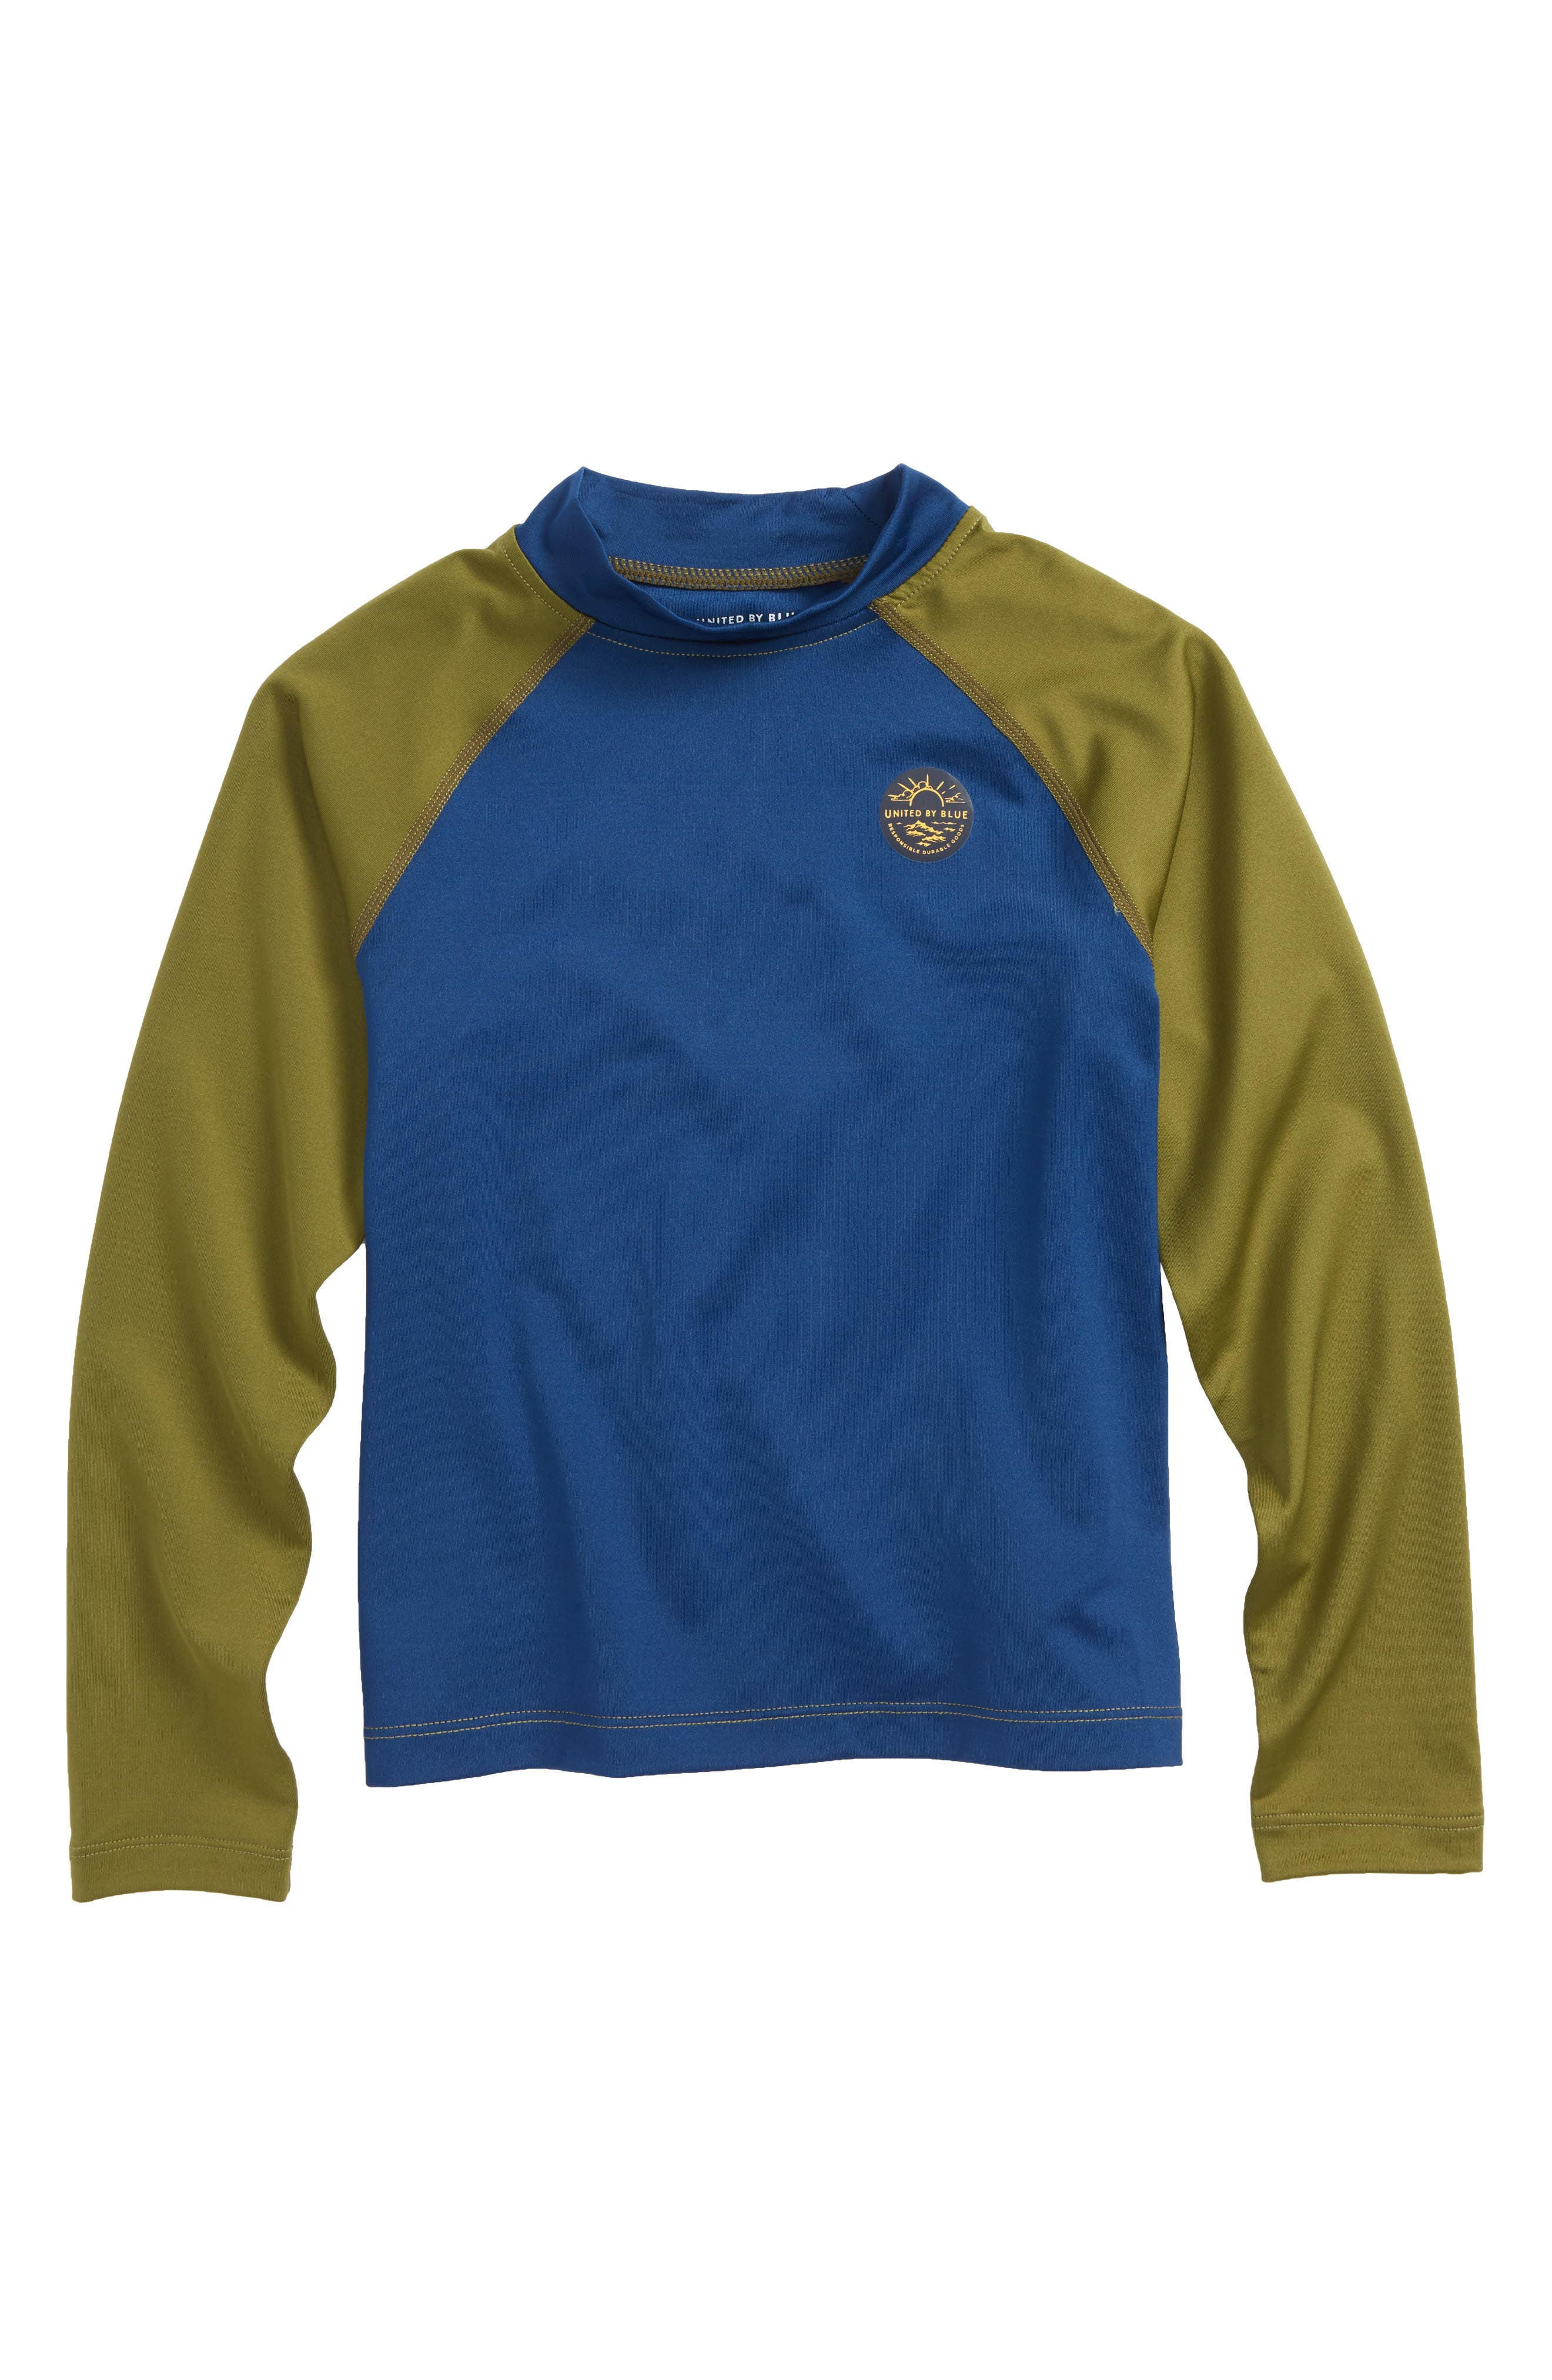 Long Sleeve Rashguard,                             Main thumbnail 1, color,                             Navy